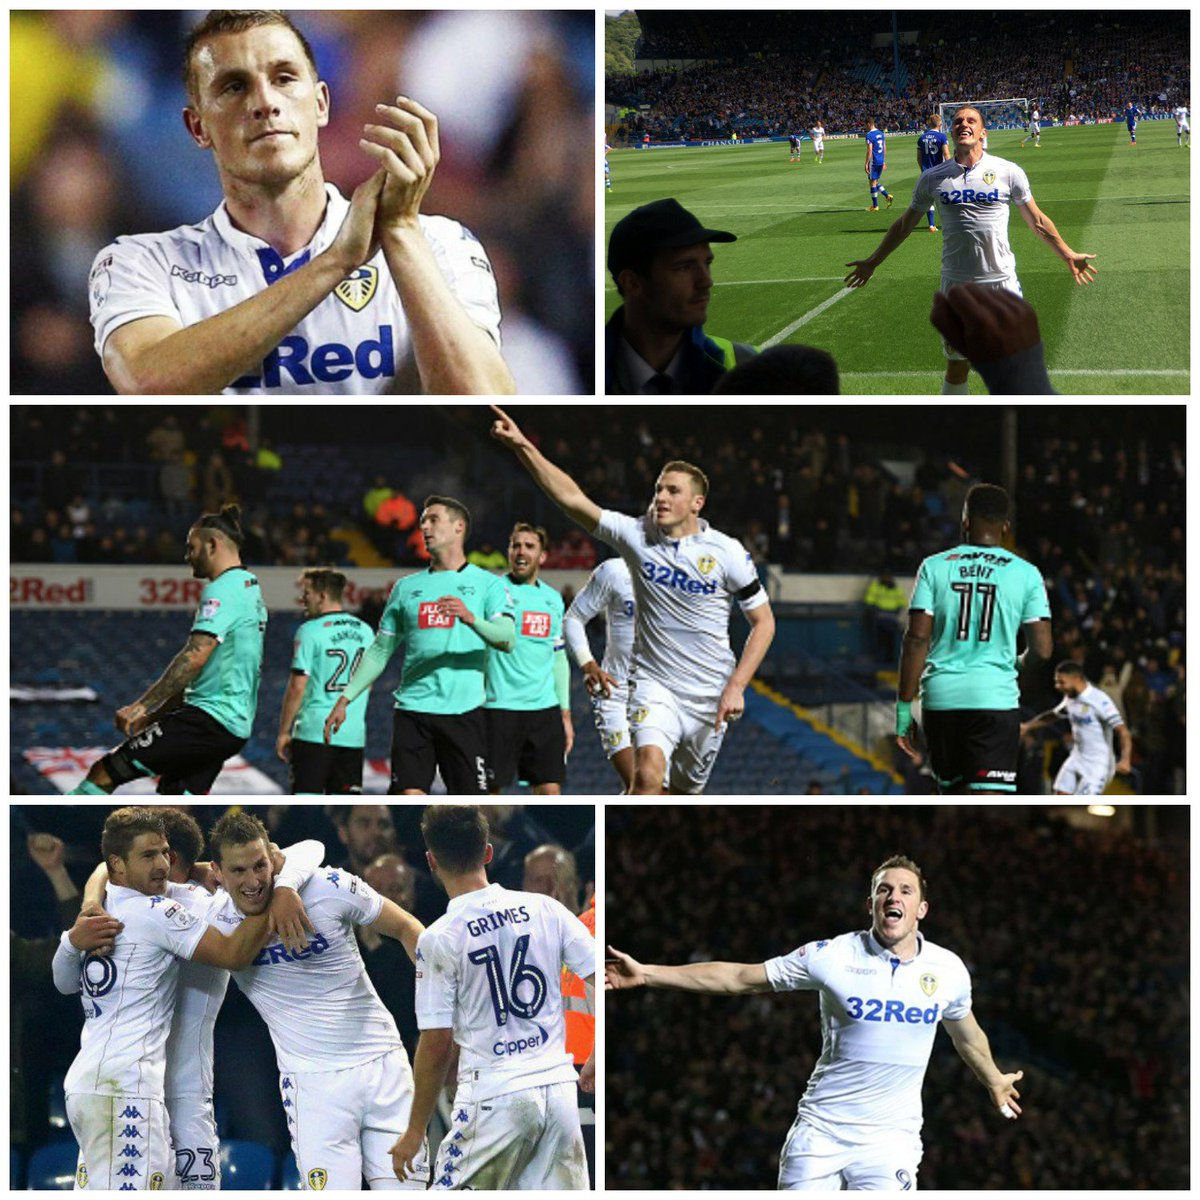 Who is the best striker in the championship? Forget the rest, we have the best.....@officialcwood  #mot #lufc #Woody #Simplythebest xx<br>http://pic.twitter.com/GxxrWEZZp2